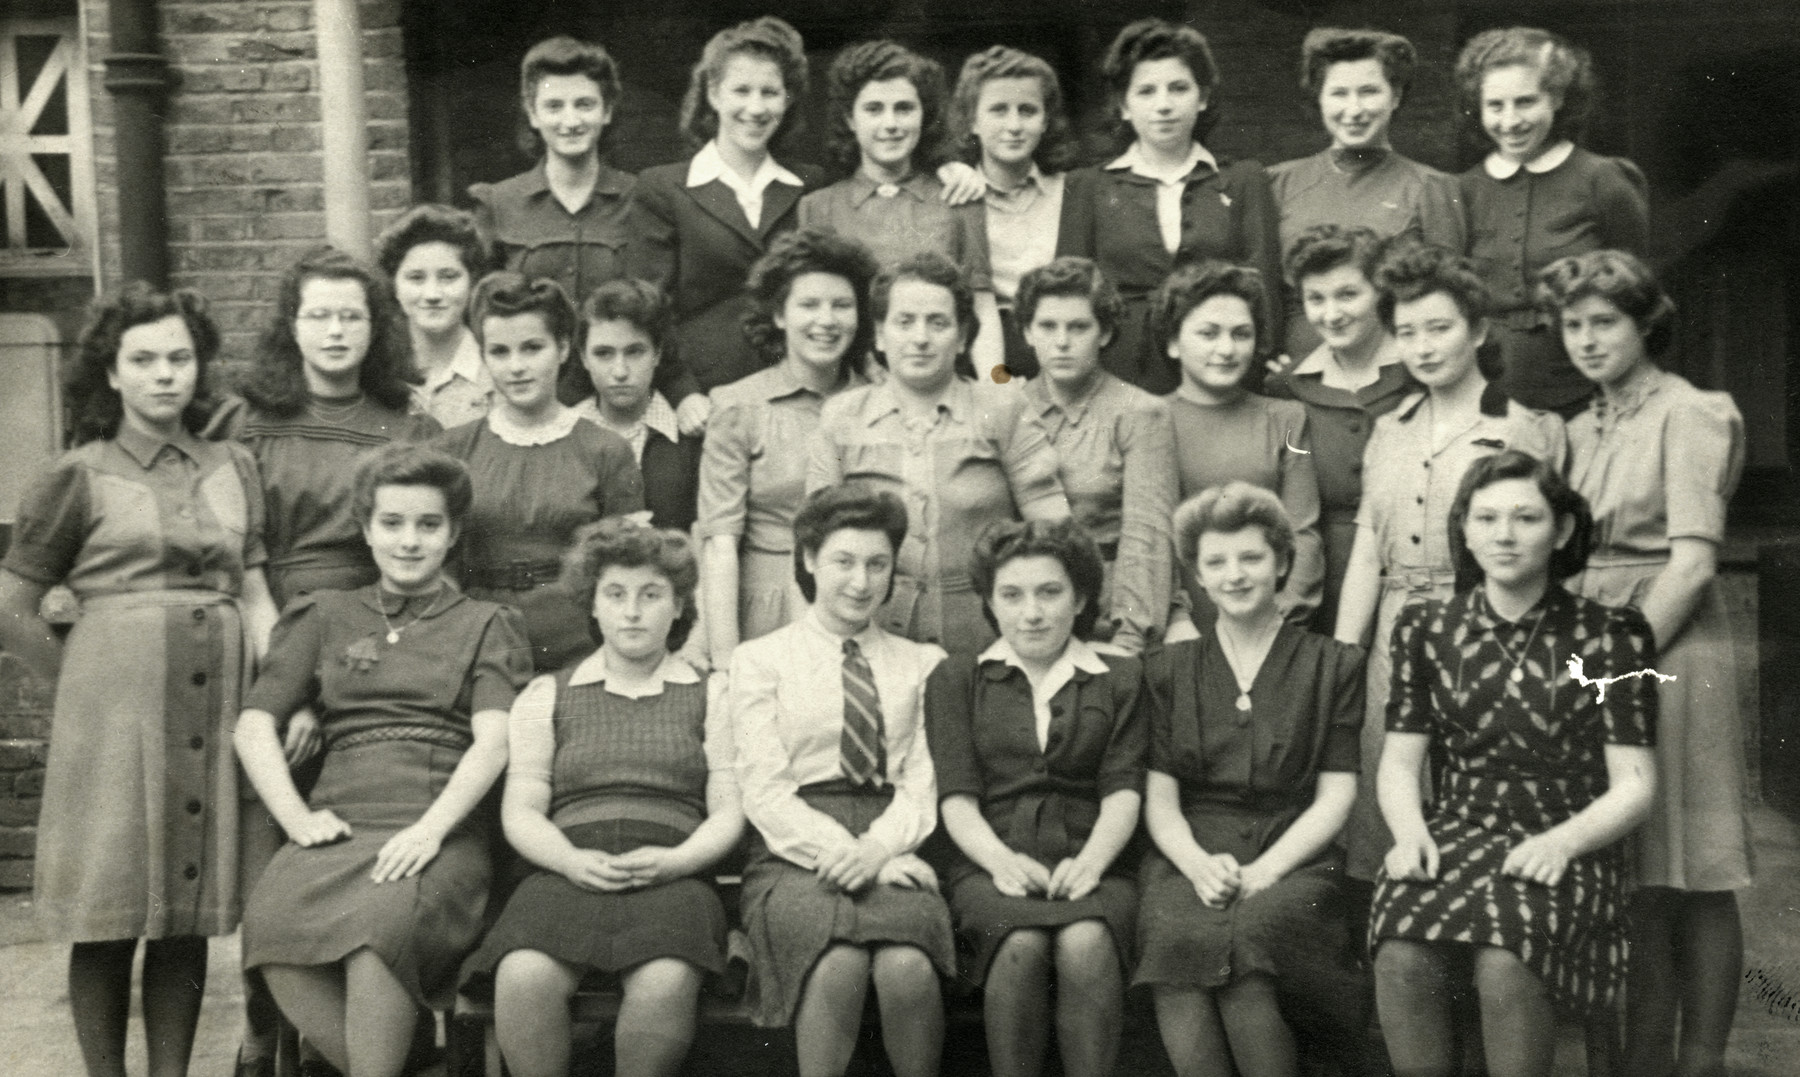 A group photograph at the Cazenova Road Hostel in London England.   The photograph was taken either during war time or during the post war. Gerda Beruh wears a tie in front with her sister Sonja Beruh, who is behind her with curly hair.   Pictured from left to right and top to bottom; Gertie Rosner, Rosie Feingold, Pia, Lottie Shershevsky, Adela Redner, Yehudit, Ilse Schechler, Ruth Freund, Gertie Wolfgang Urman, Paula, Erica Figdor, Ruth Freund, Sonja Beruh, Dora Margolies (Matron of the House), unnamed, Theo, unnamed, Regina, unnamed, Ava Figdor Levy, unnamed, Gerda Beruh, unnamed, unnamed, unnamed.